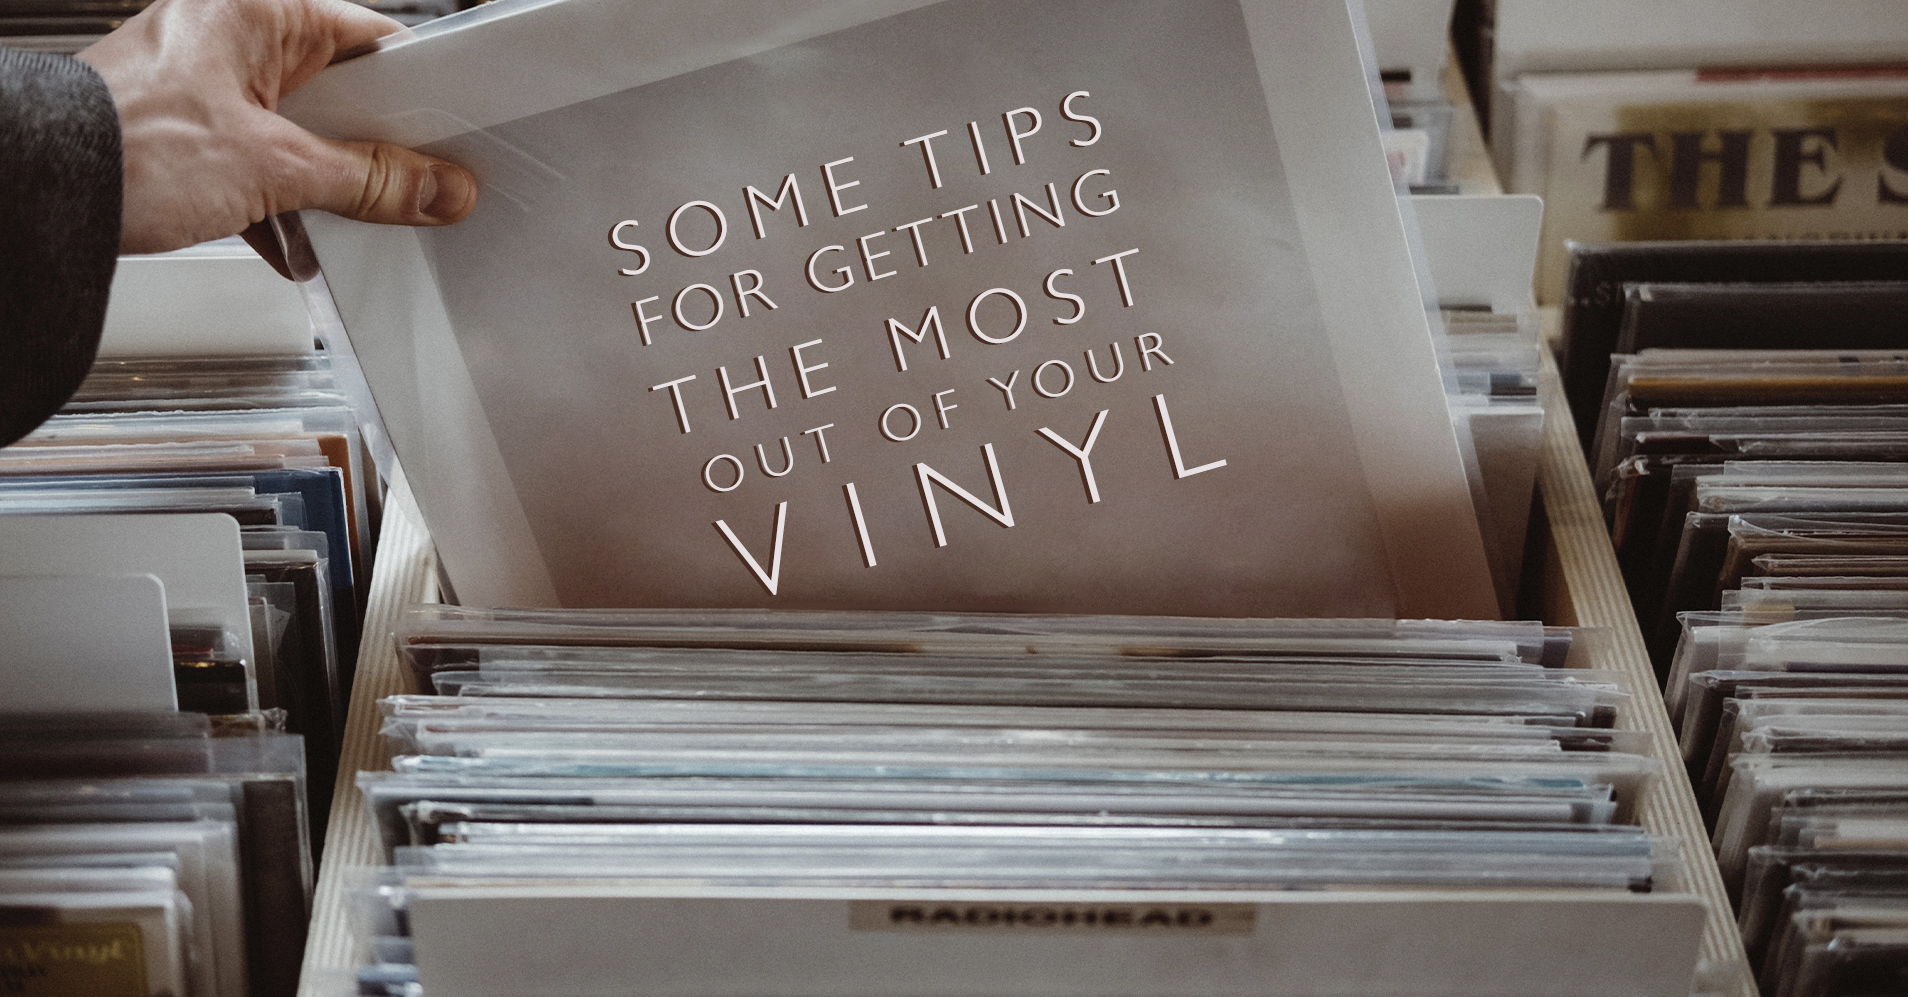 Some Simple Tips For Getting the Most Out of Your Vinyl